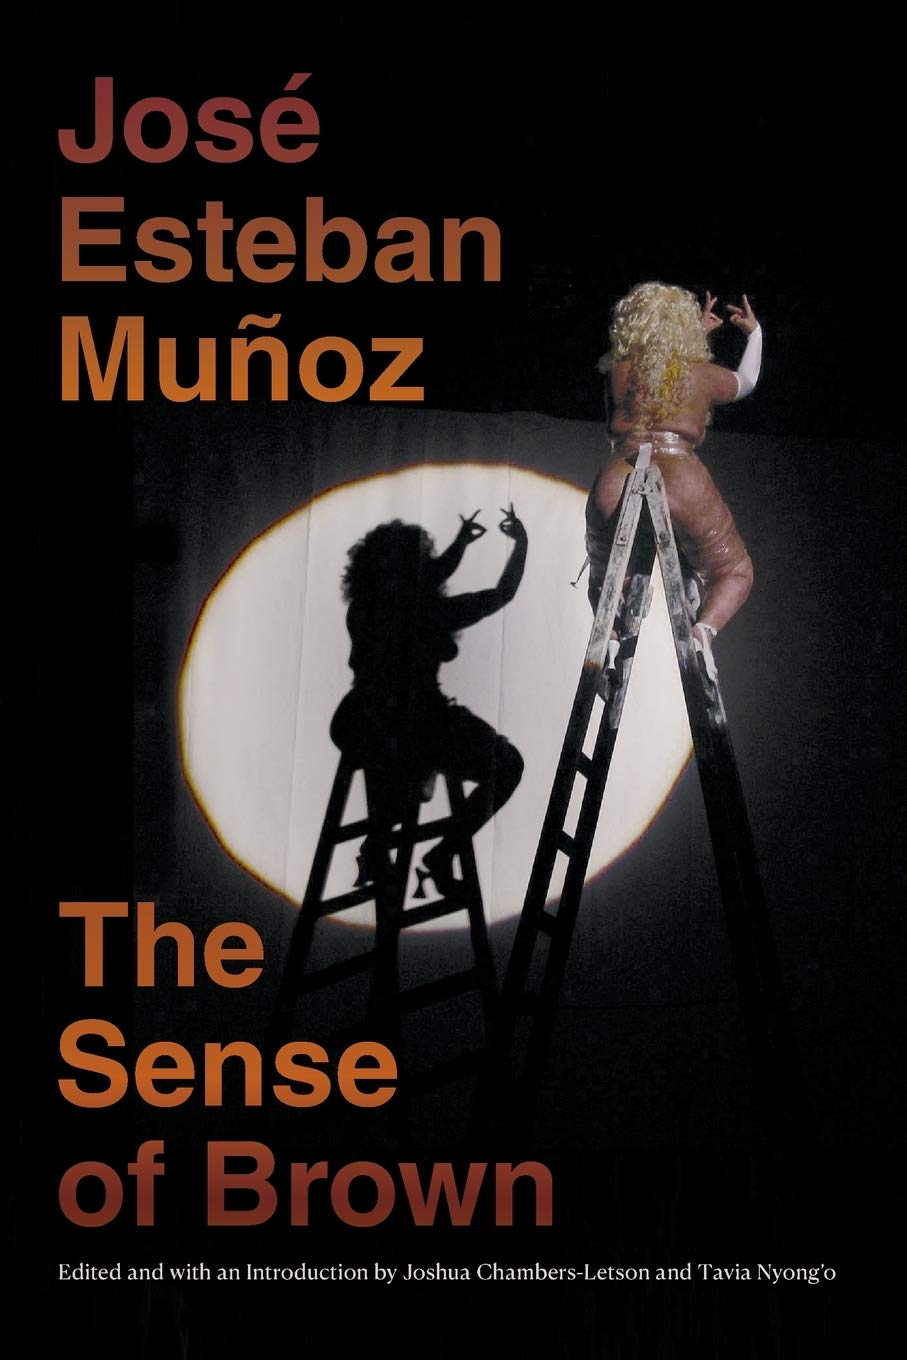 The cover of The Sense of Brown